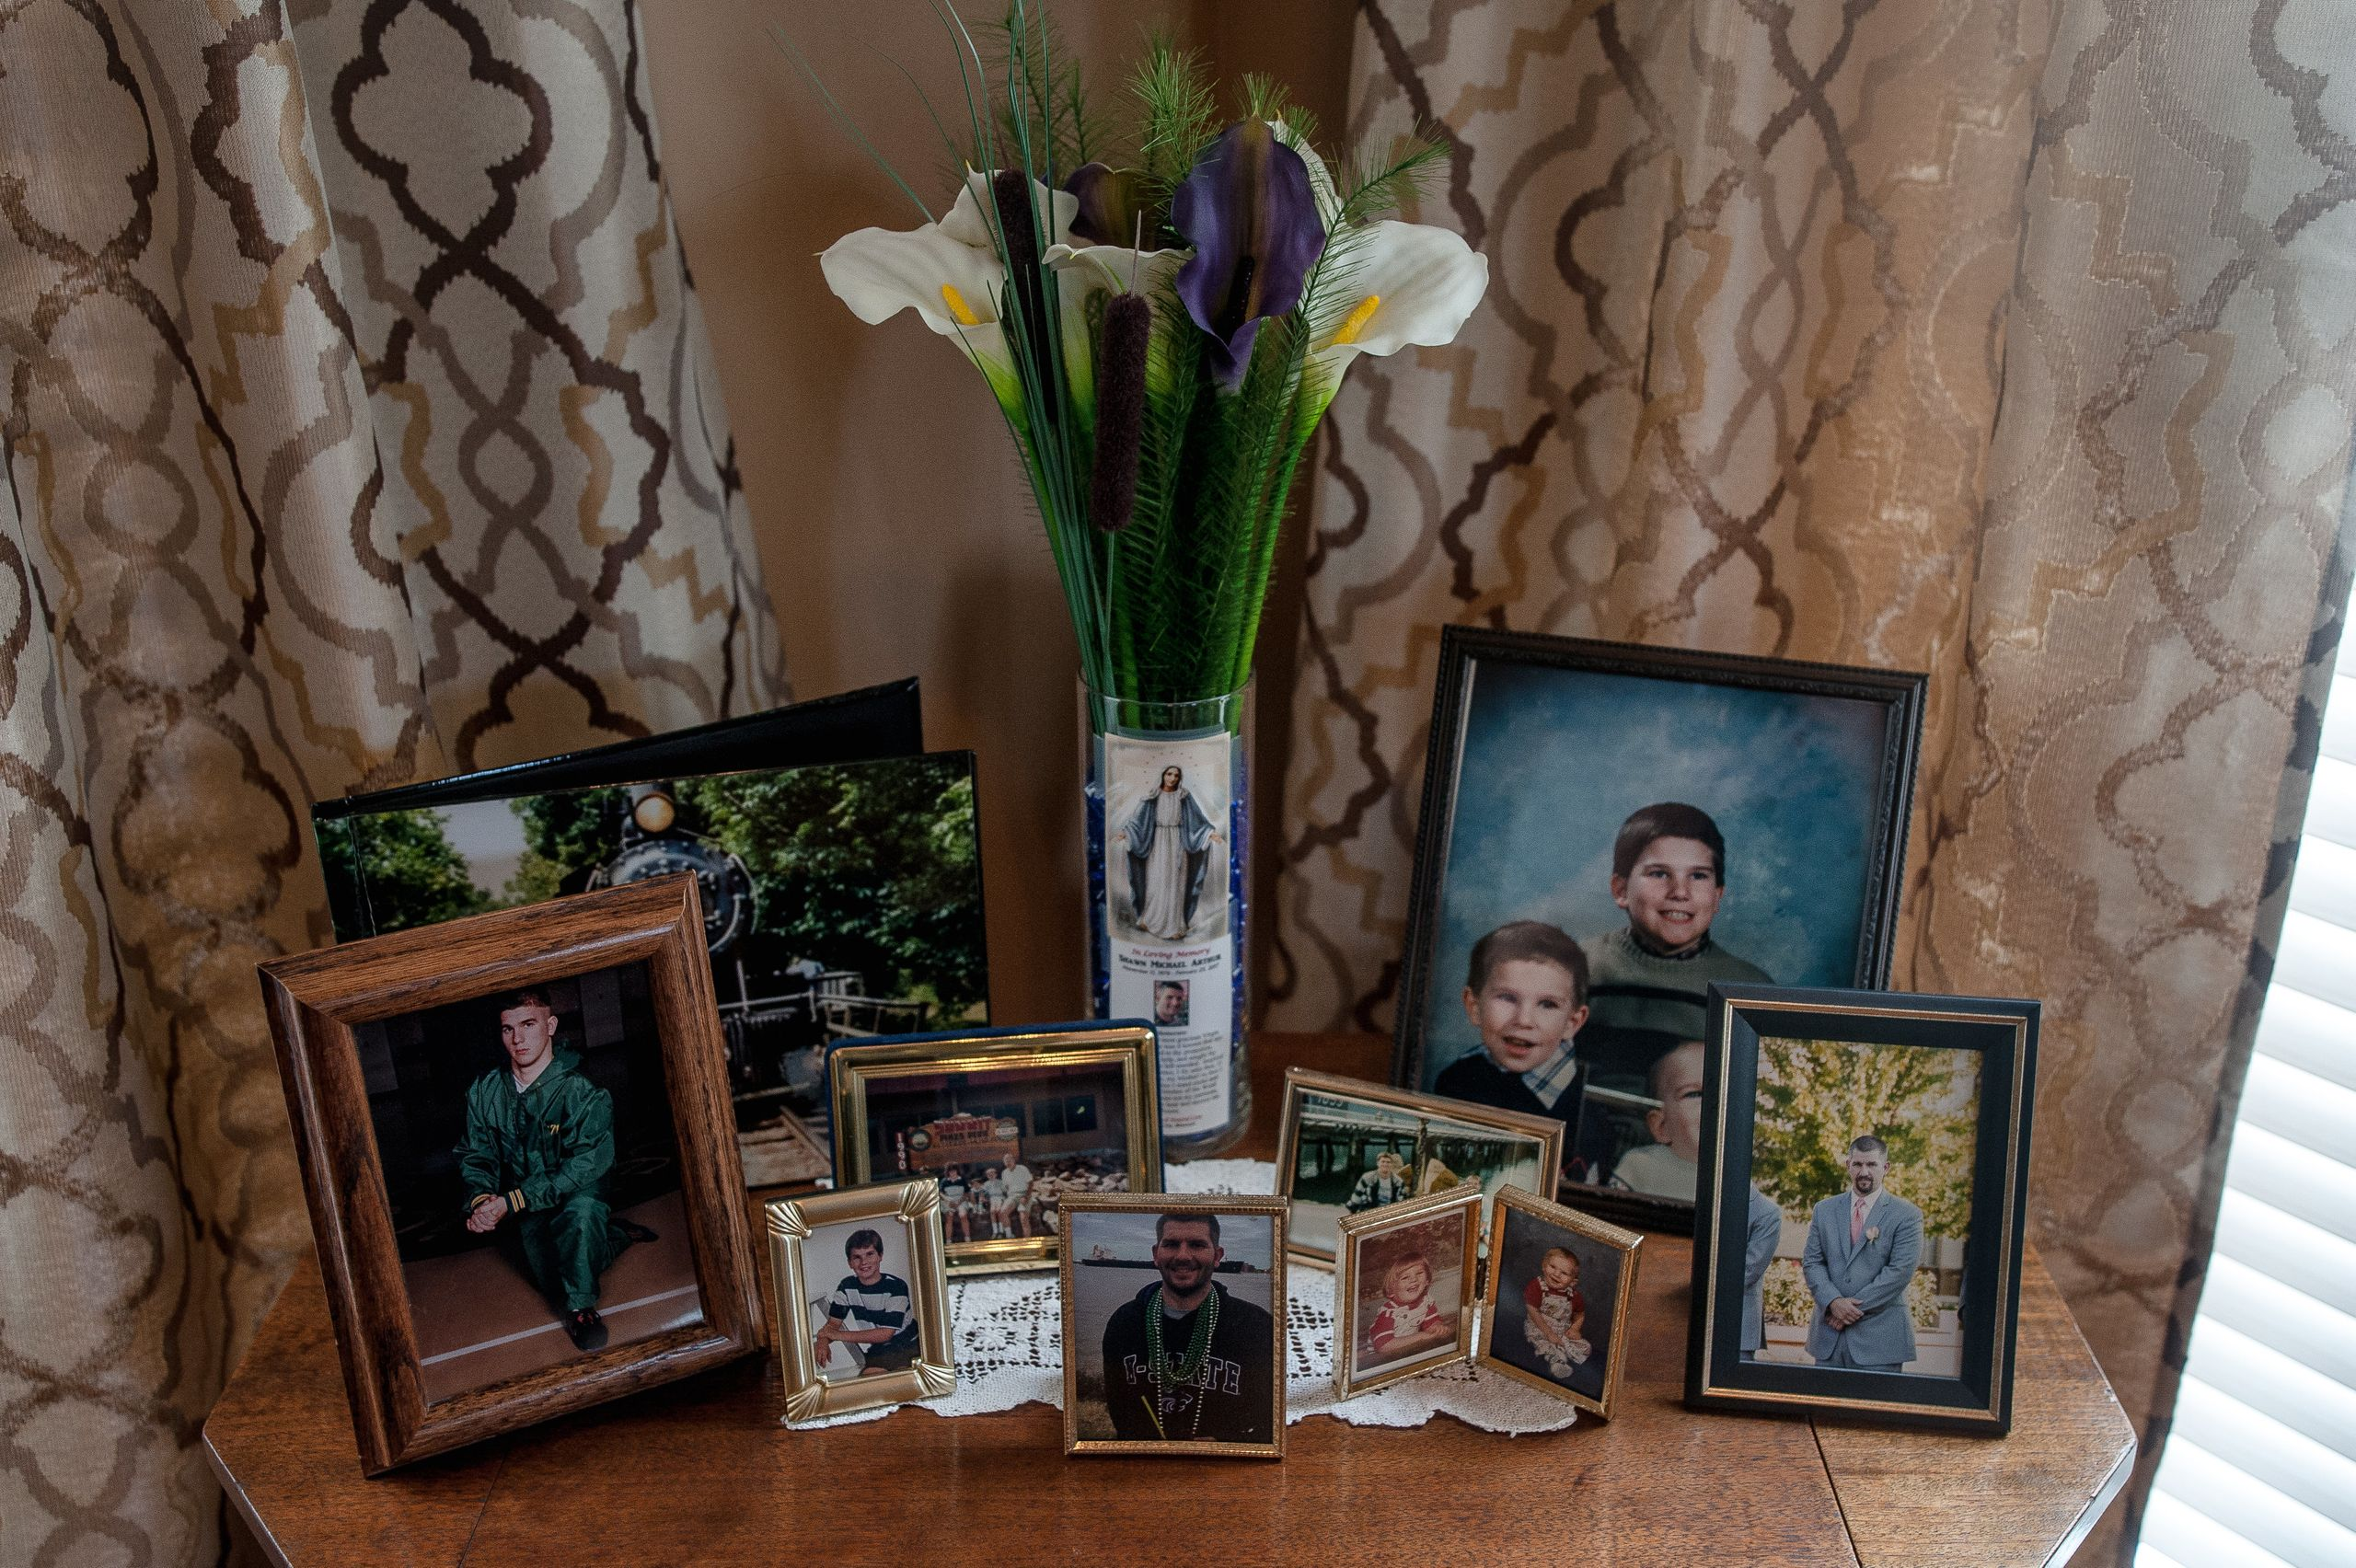 A collection of family photos at the Arthur home in Missouri.